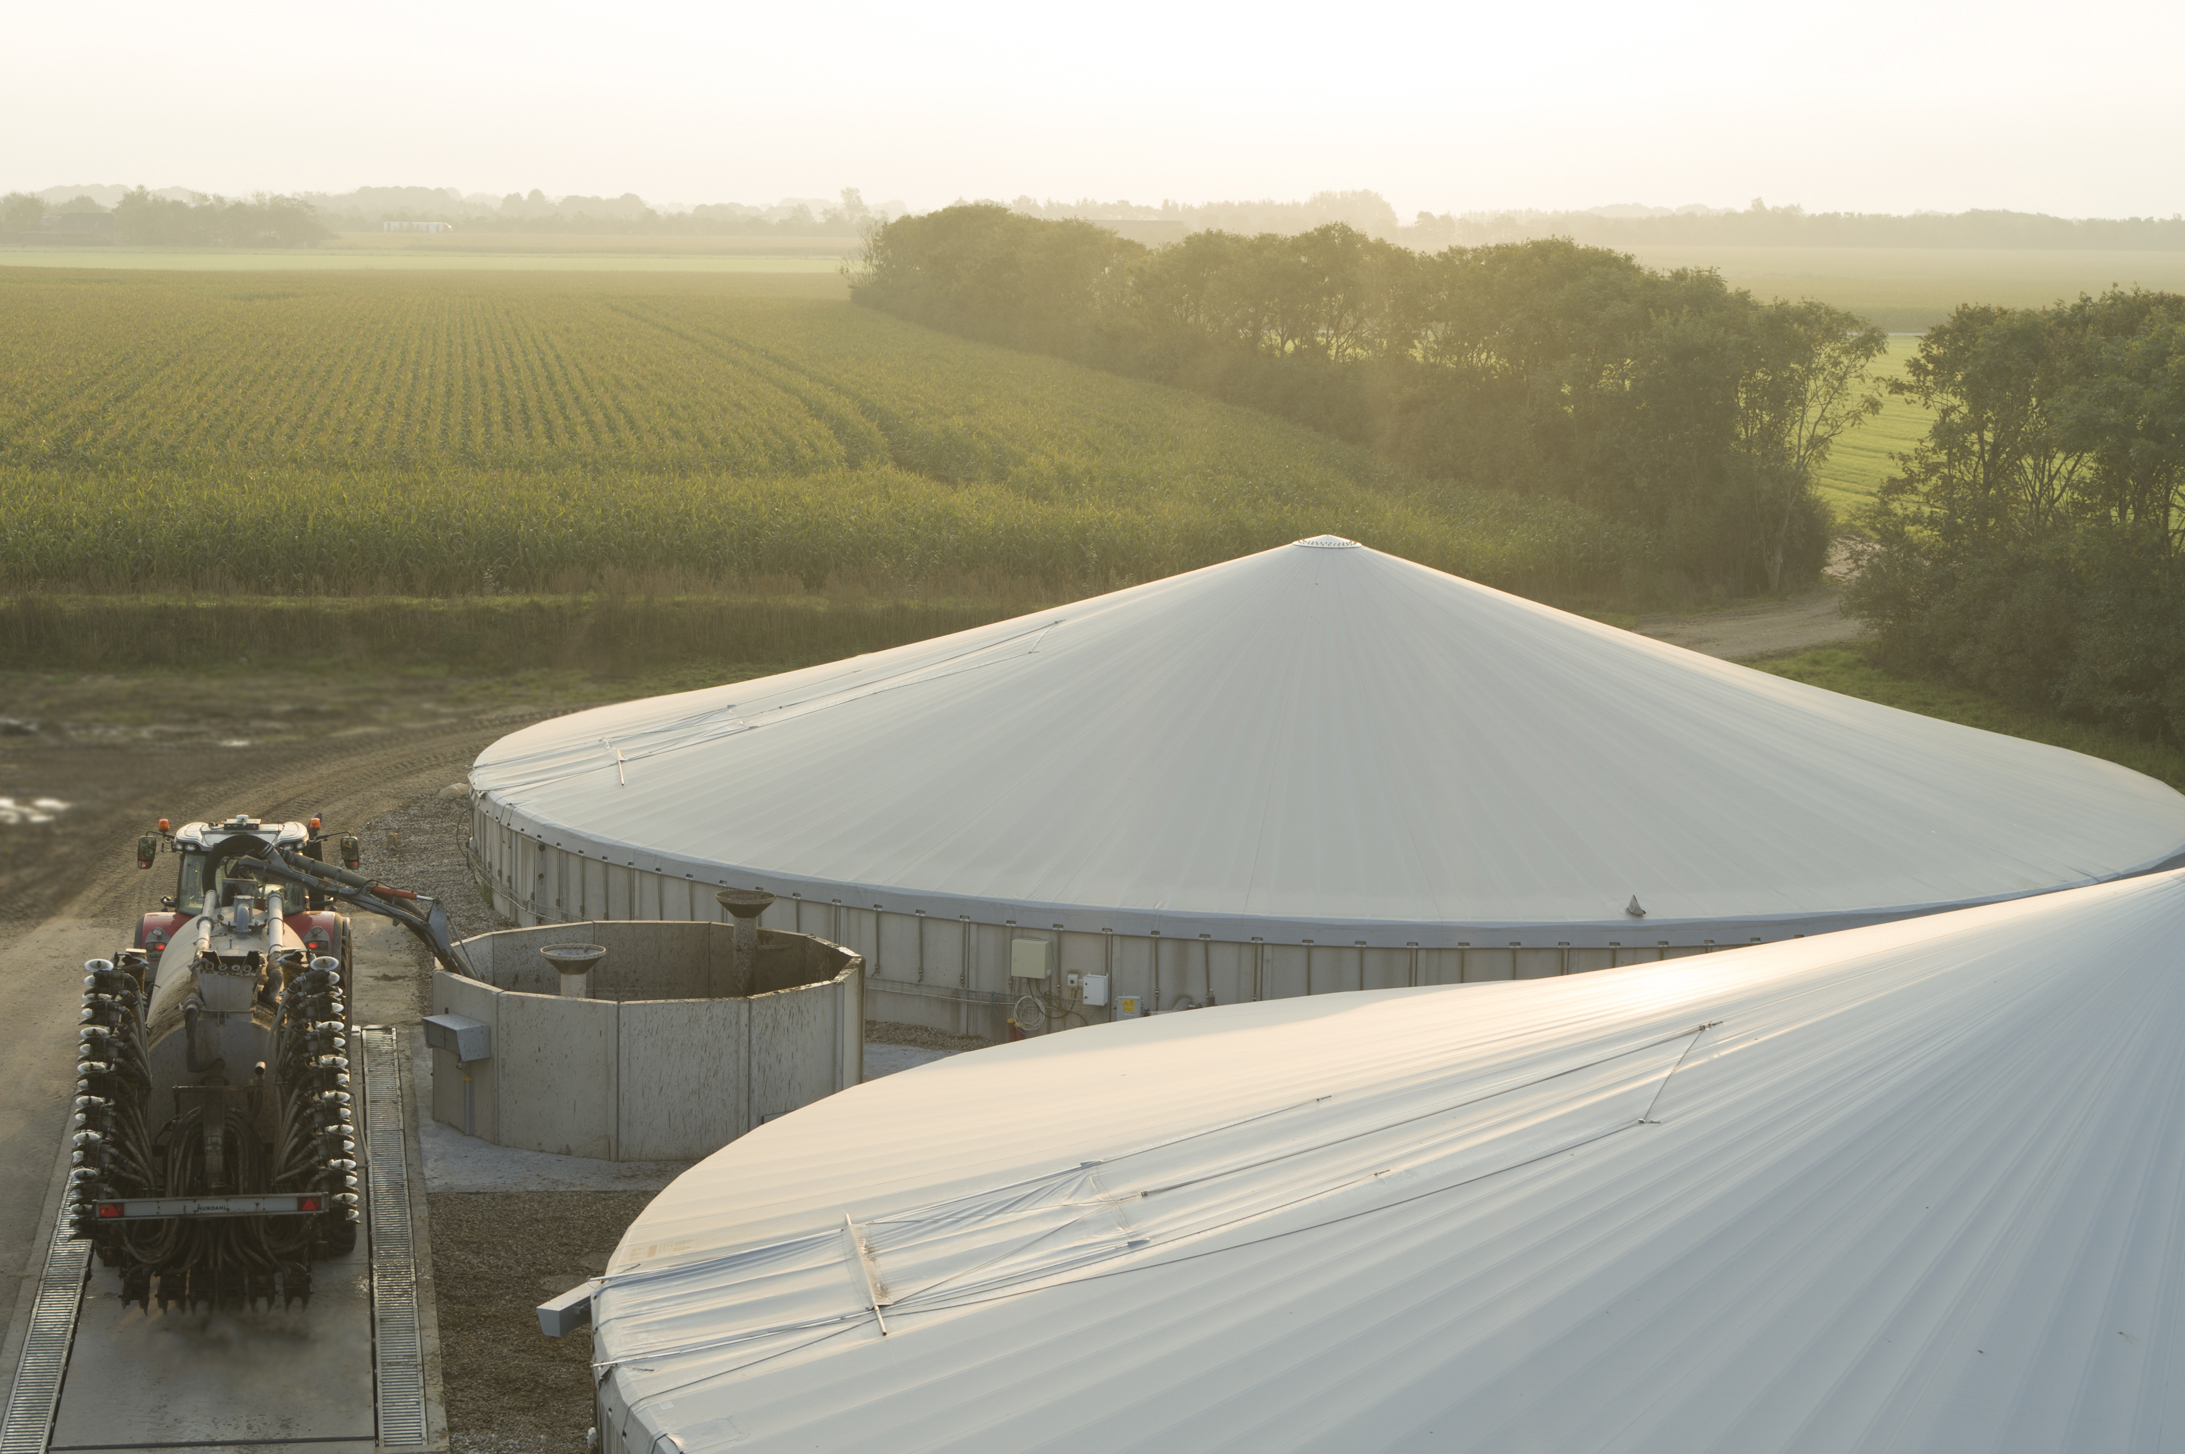 The liquid sludge and manure inserted into the biogas plant